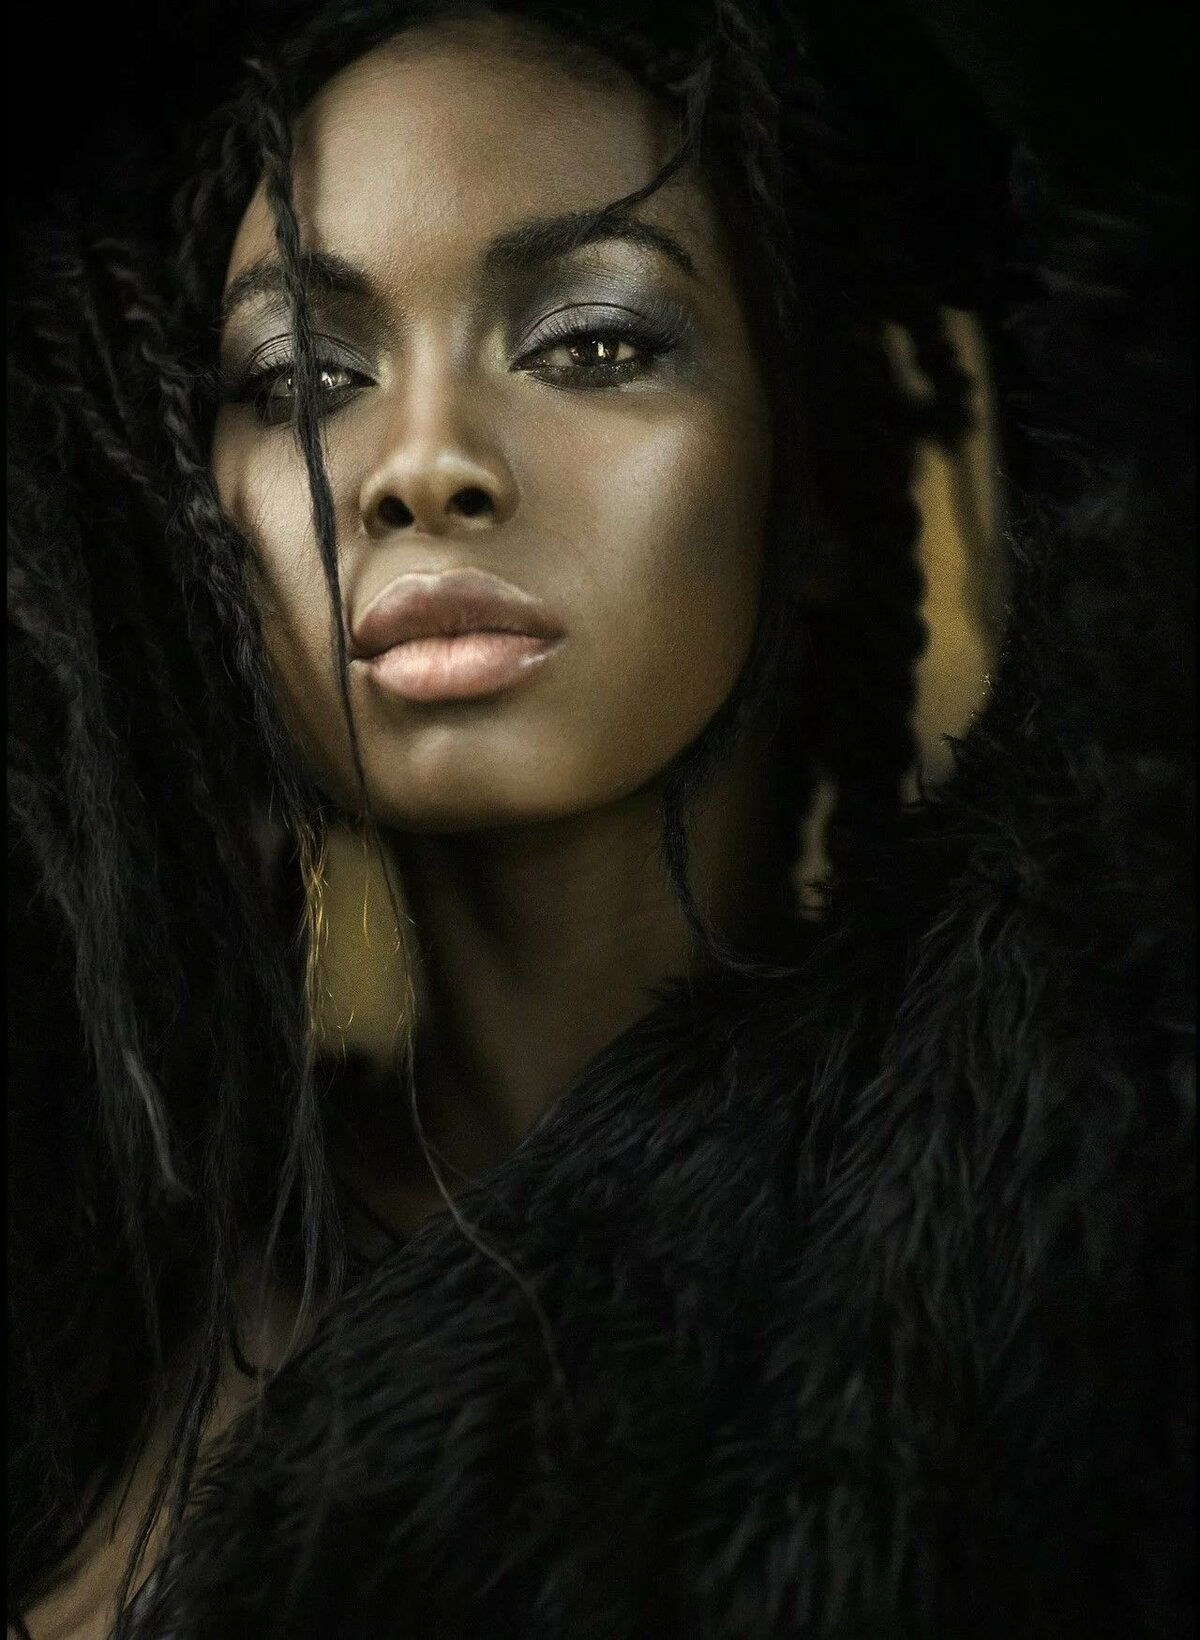 Black beauty galleries — photo 3